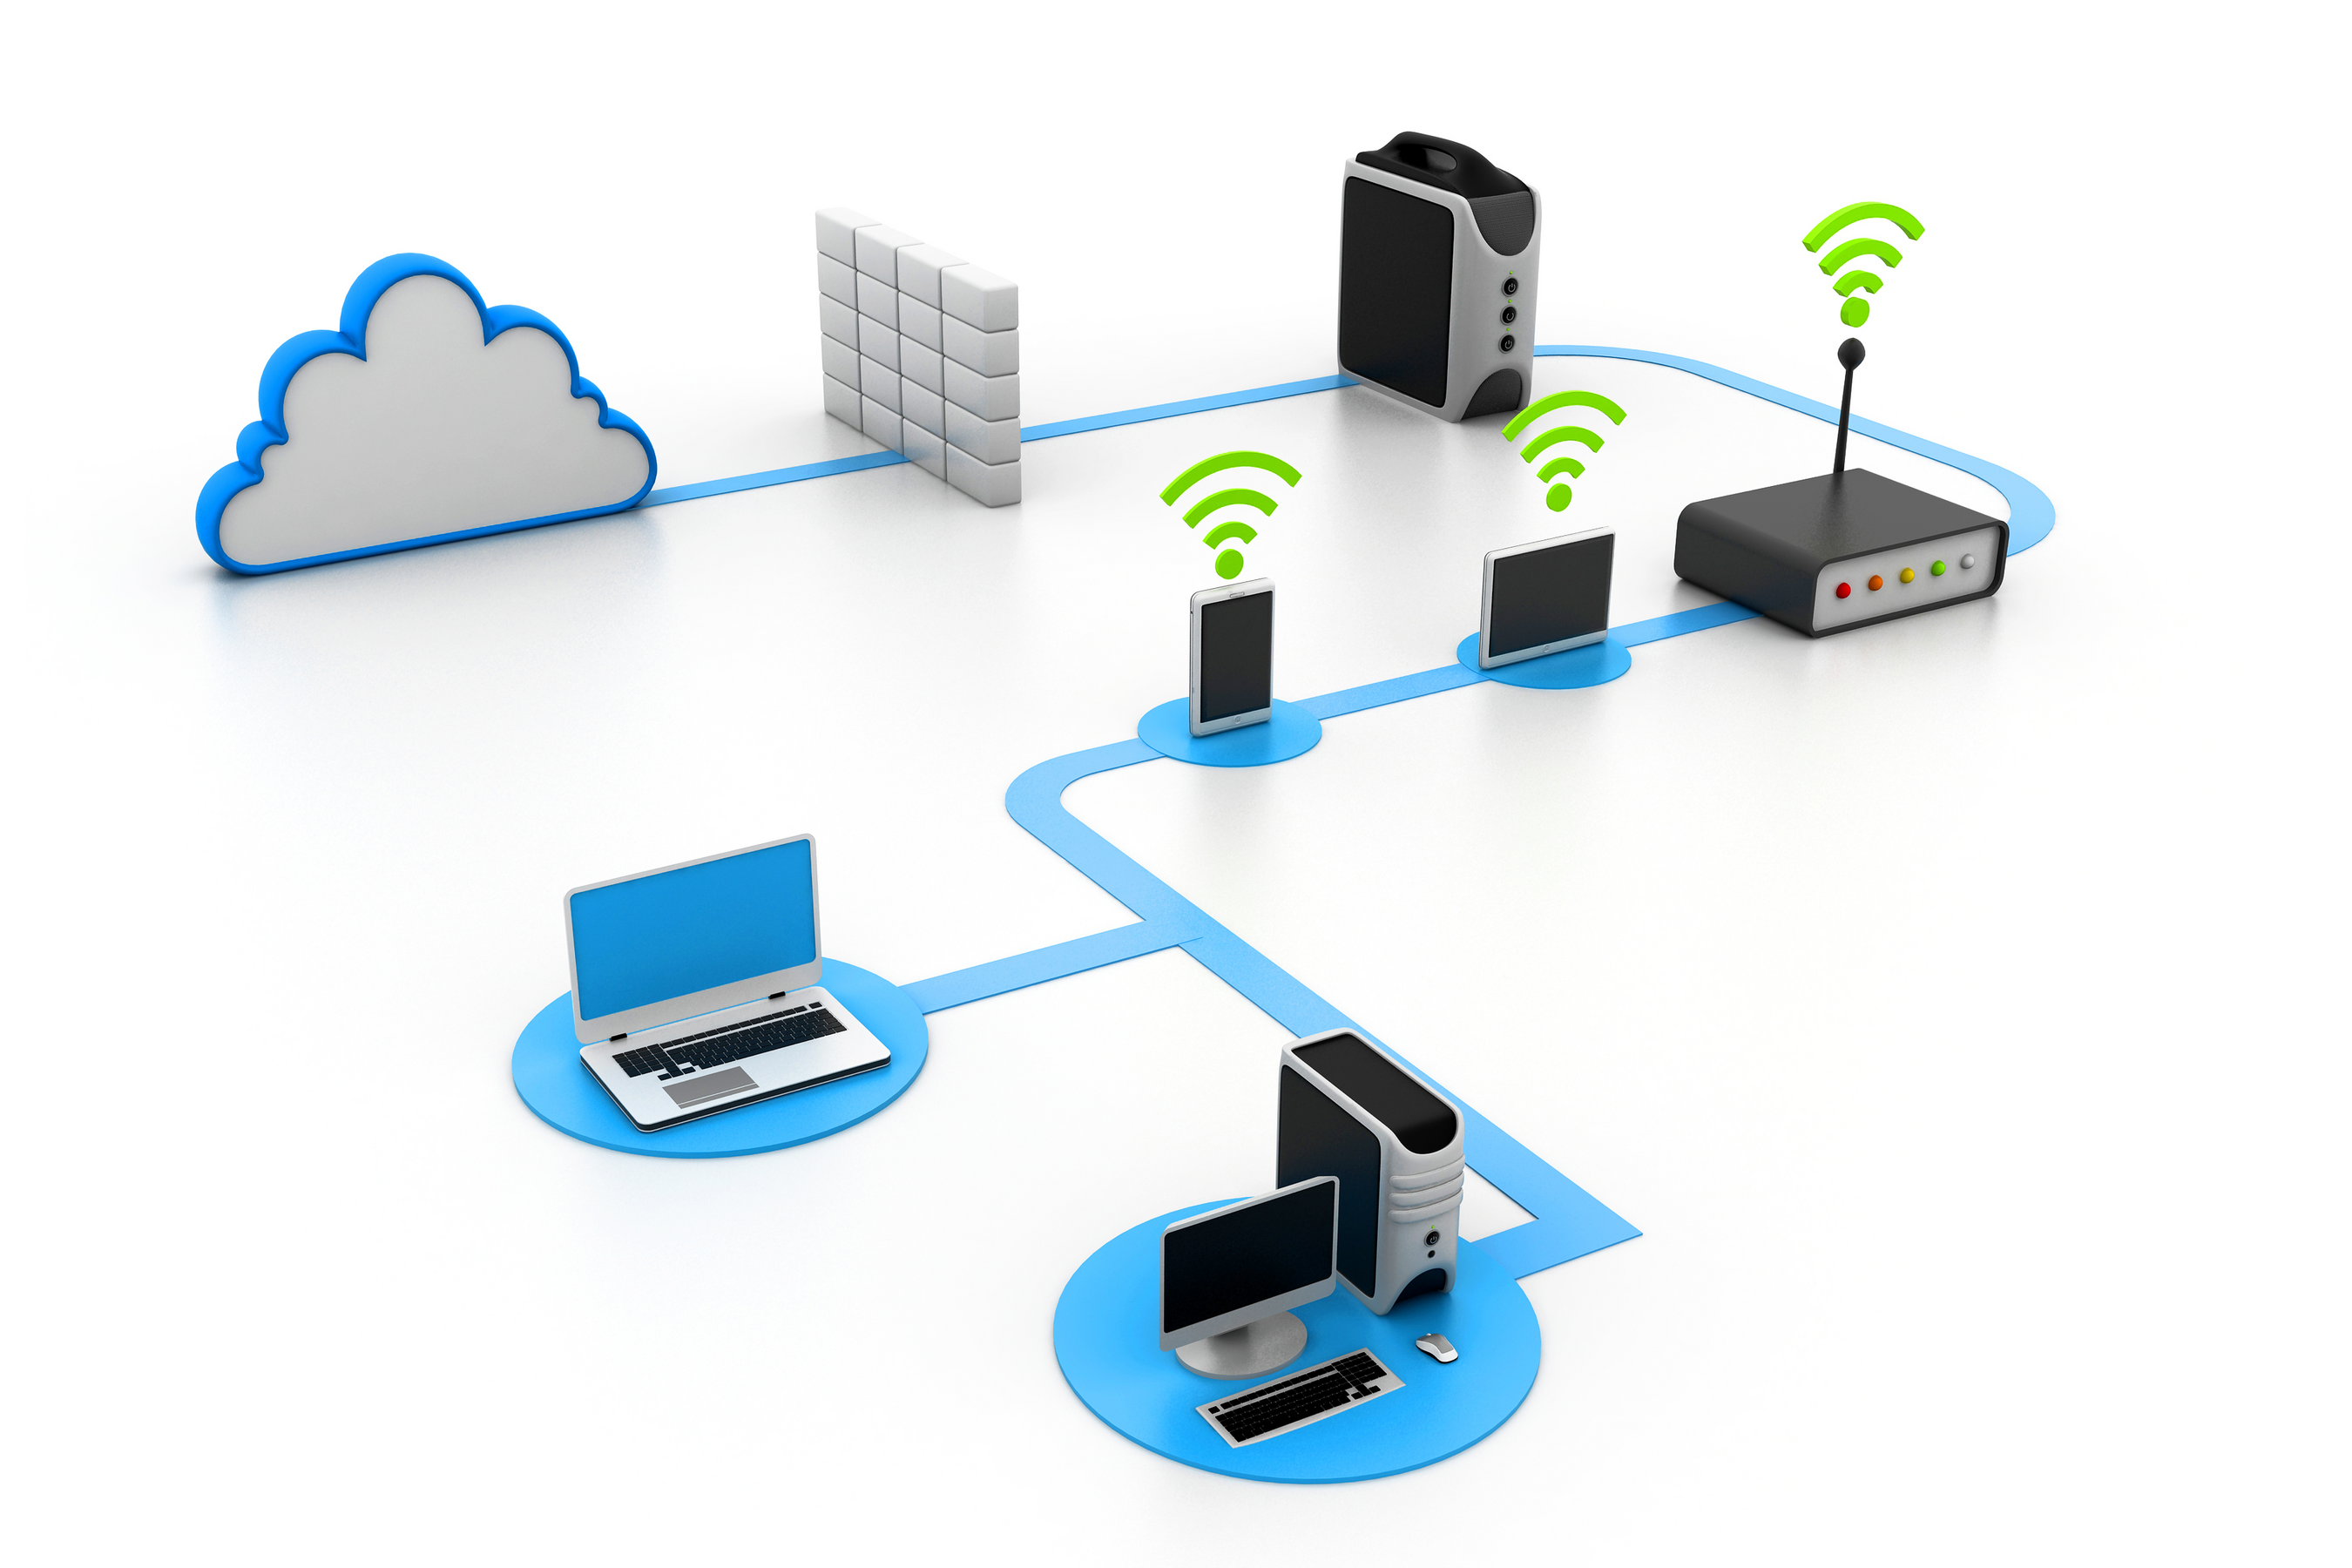 Ethica SD-WAN with Connected Devices